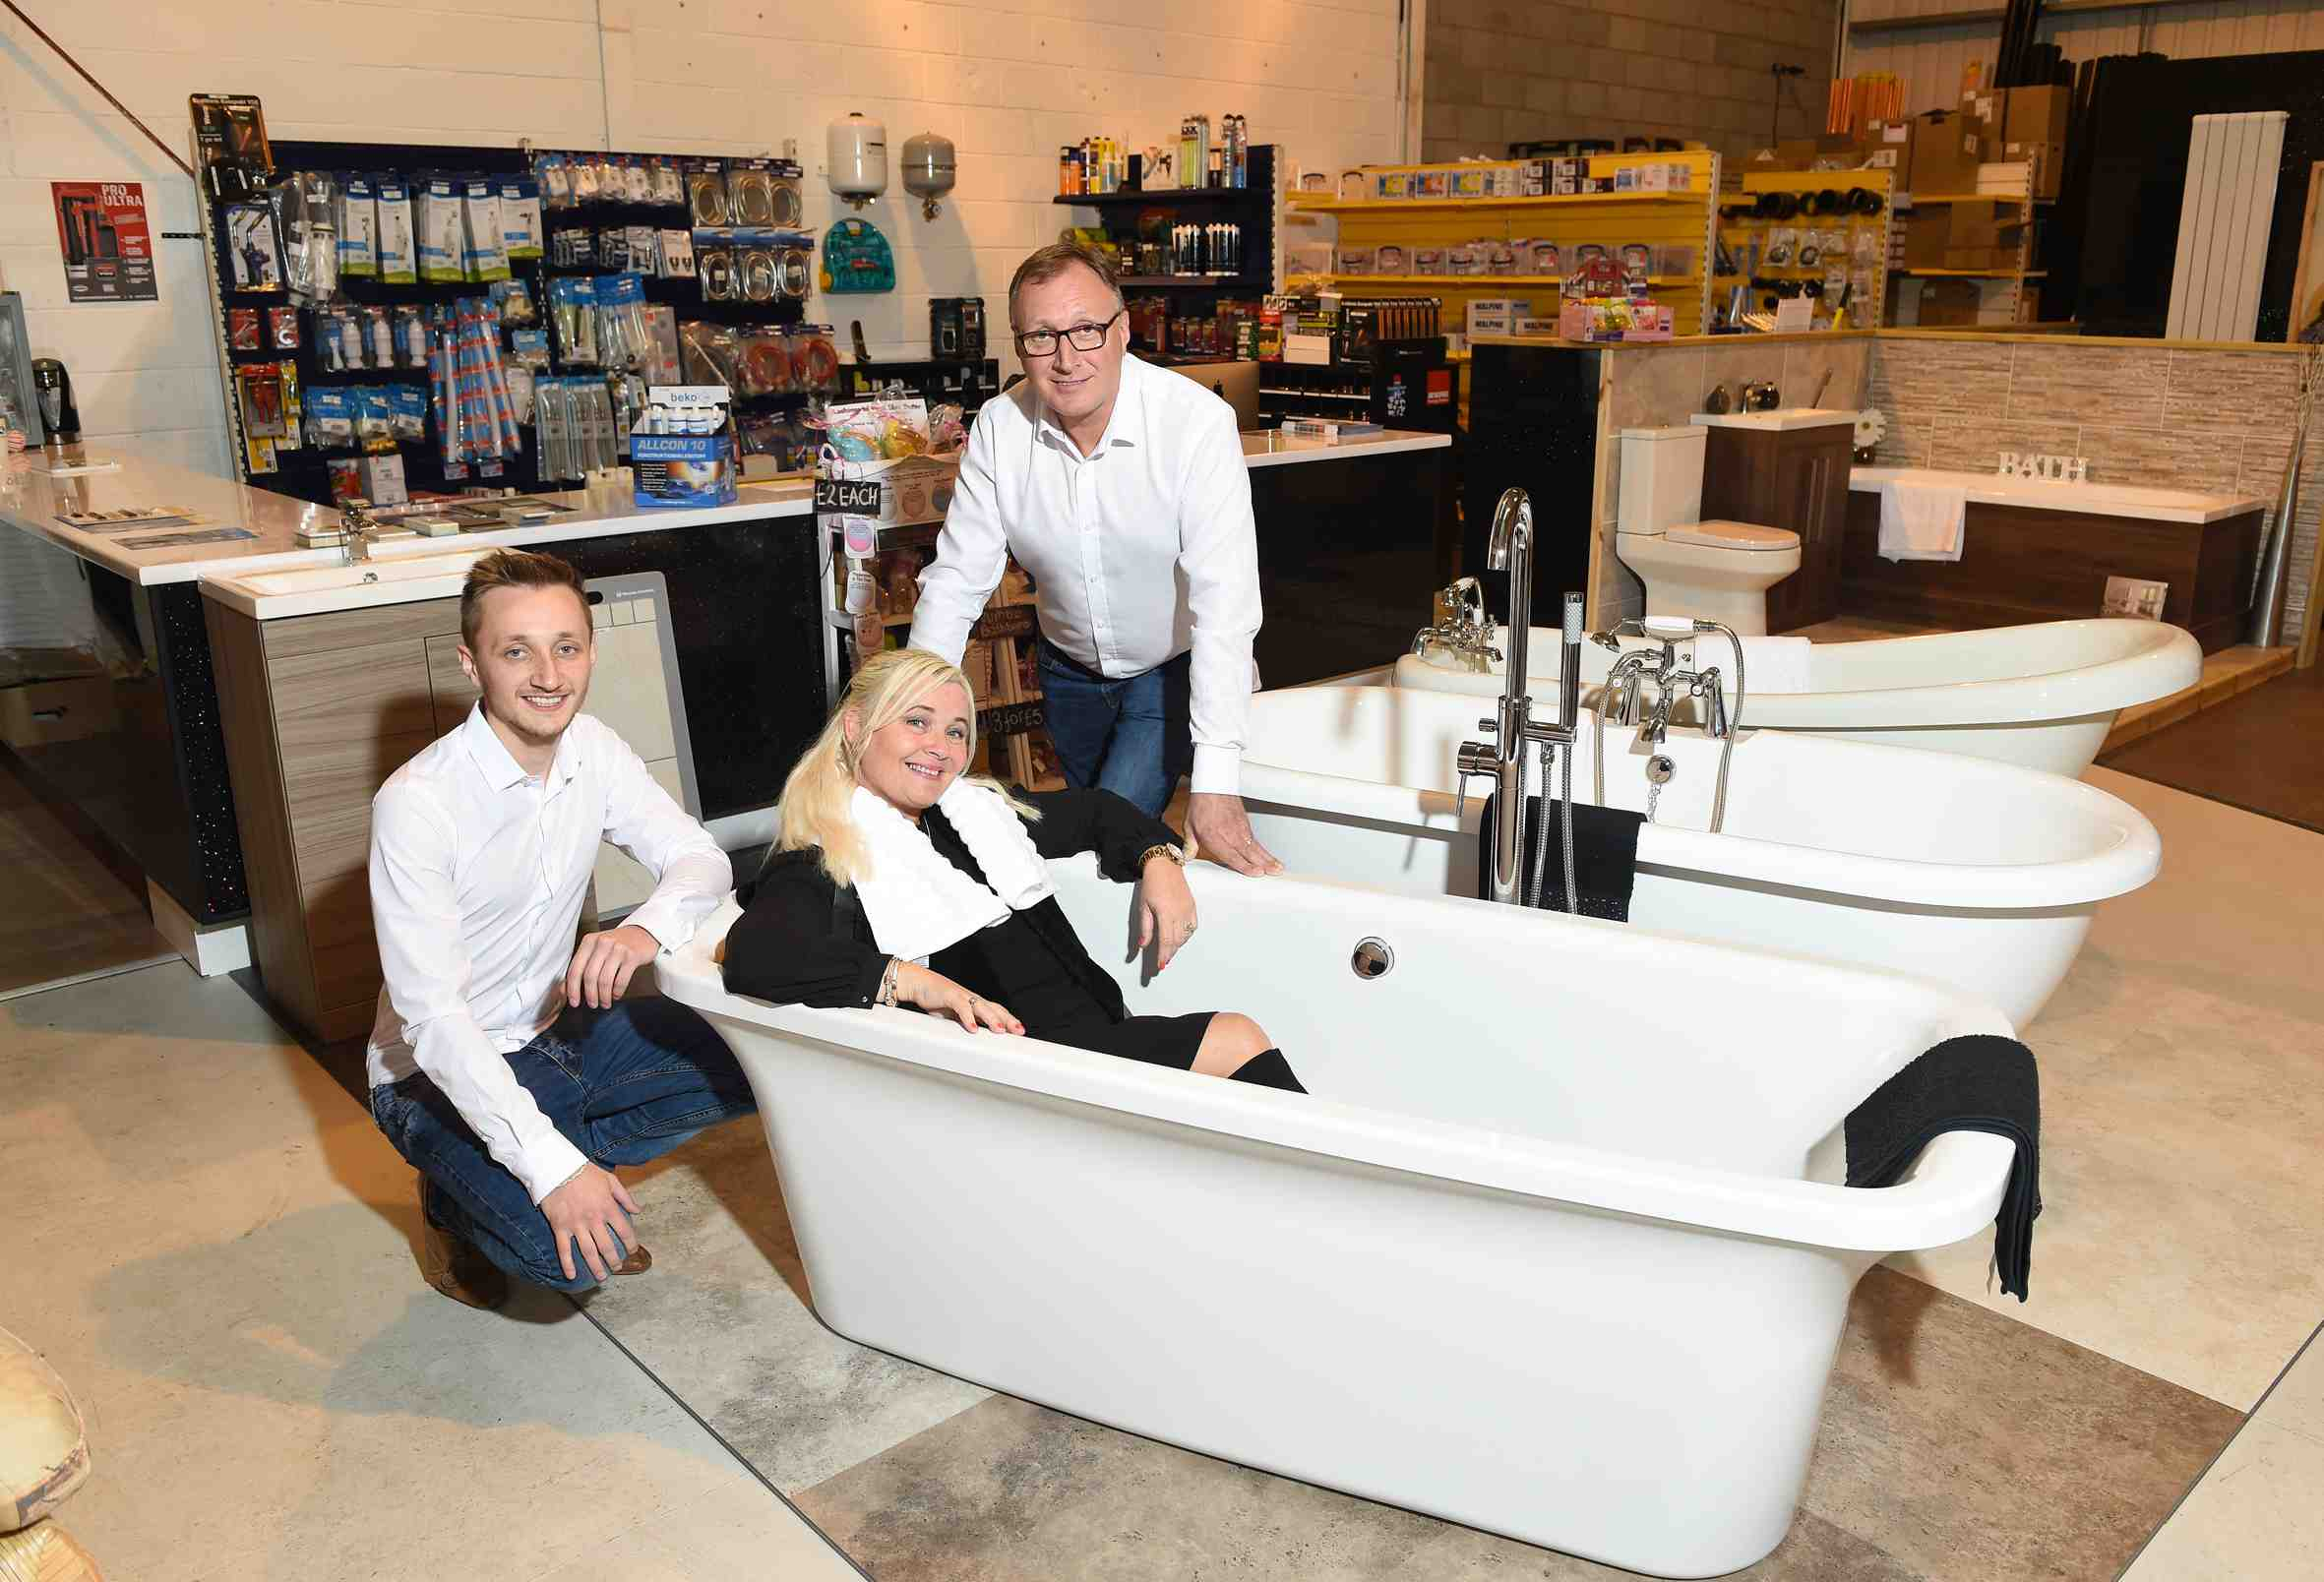 Image: New plumbing and bathroom firm hoping to make a splash